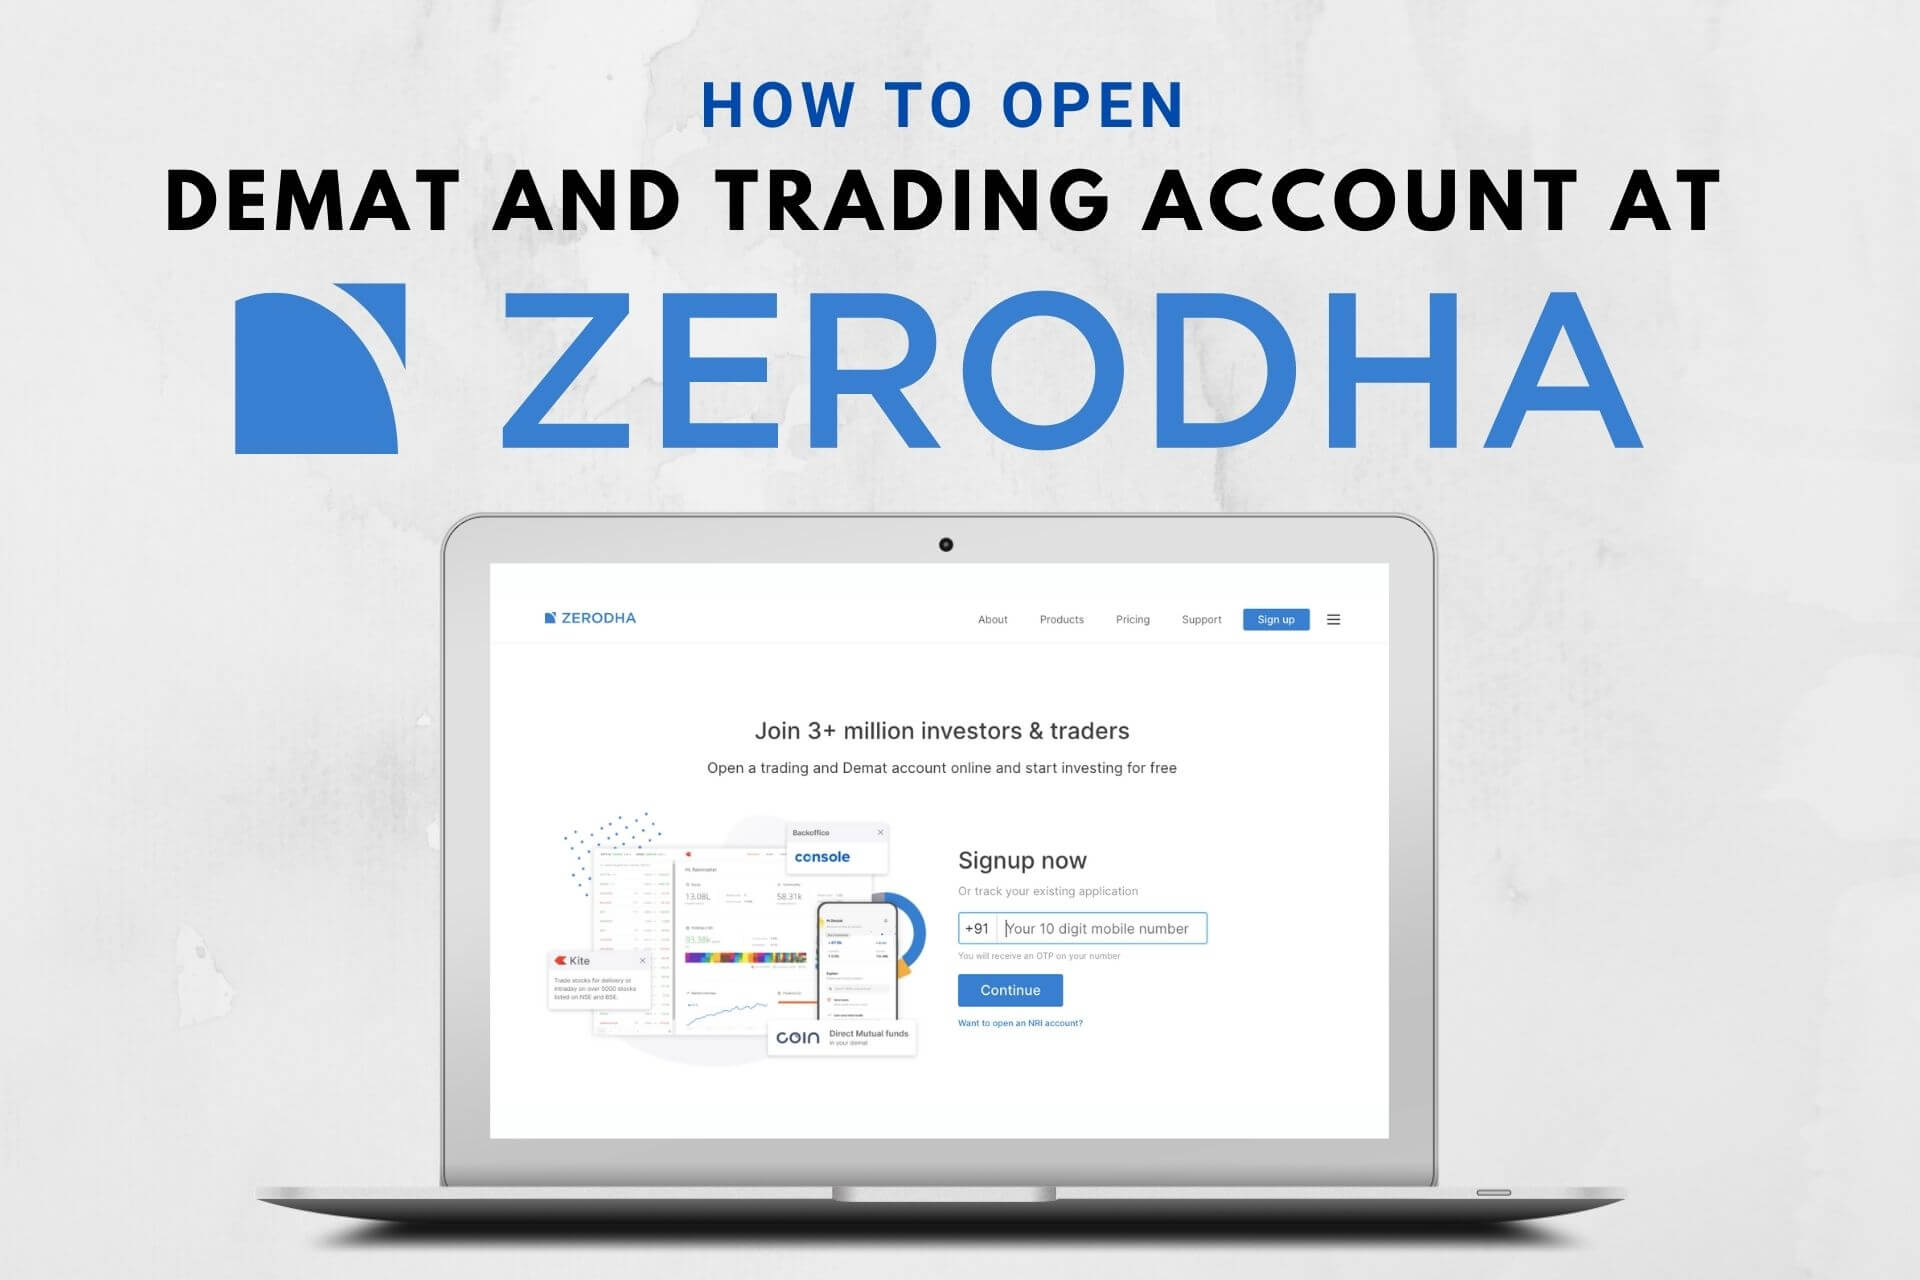 How to Open a Demat and Trading Account at Zerodha step by step